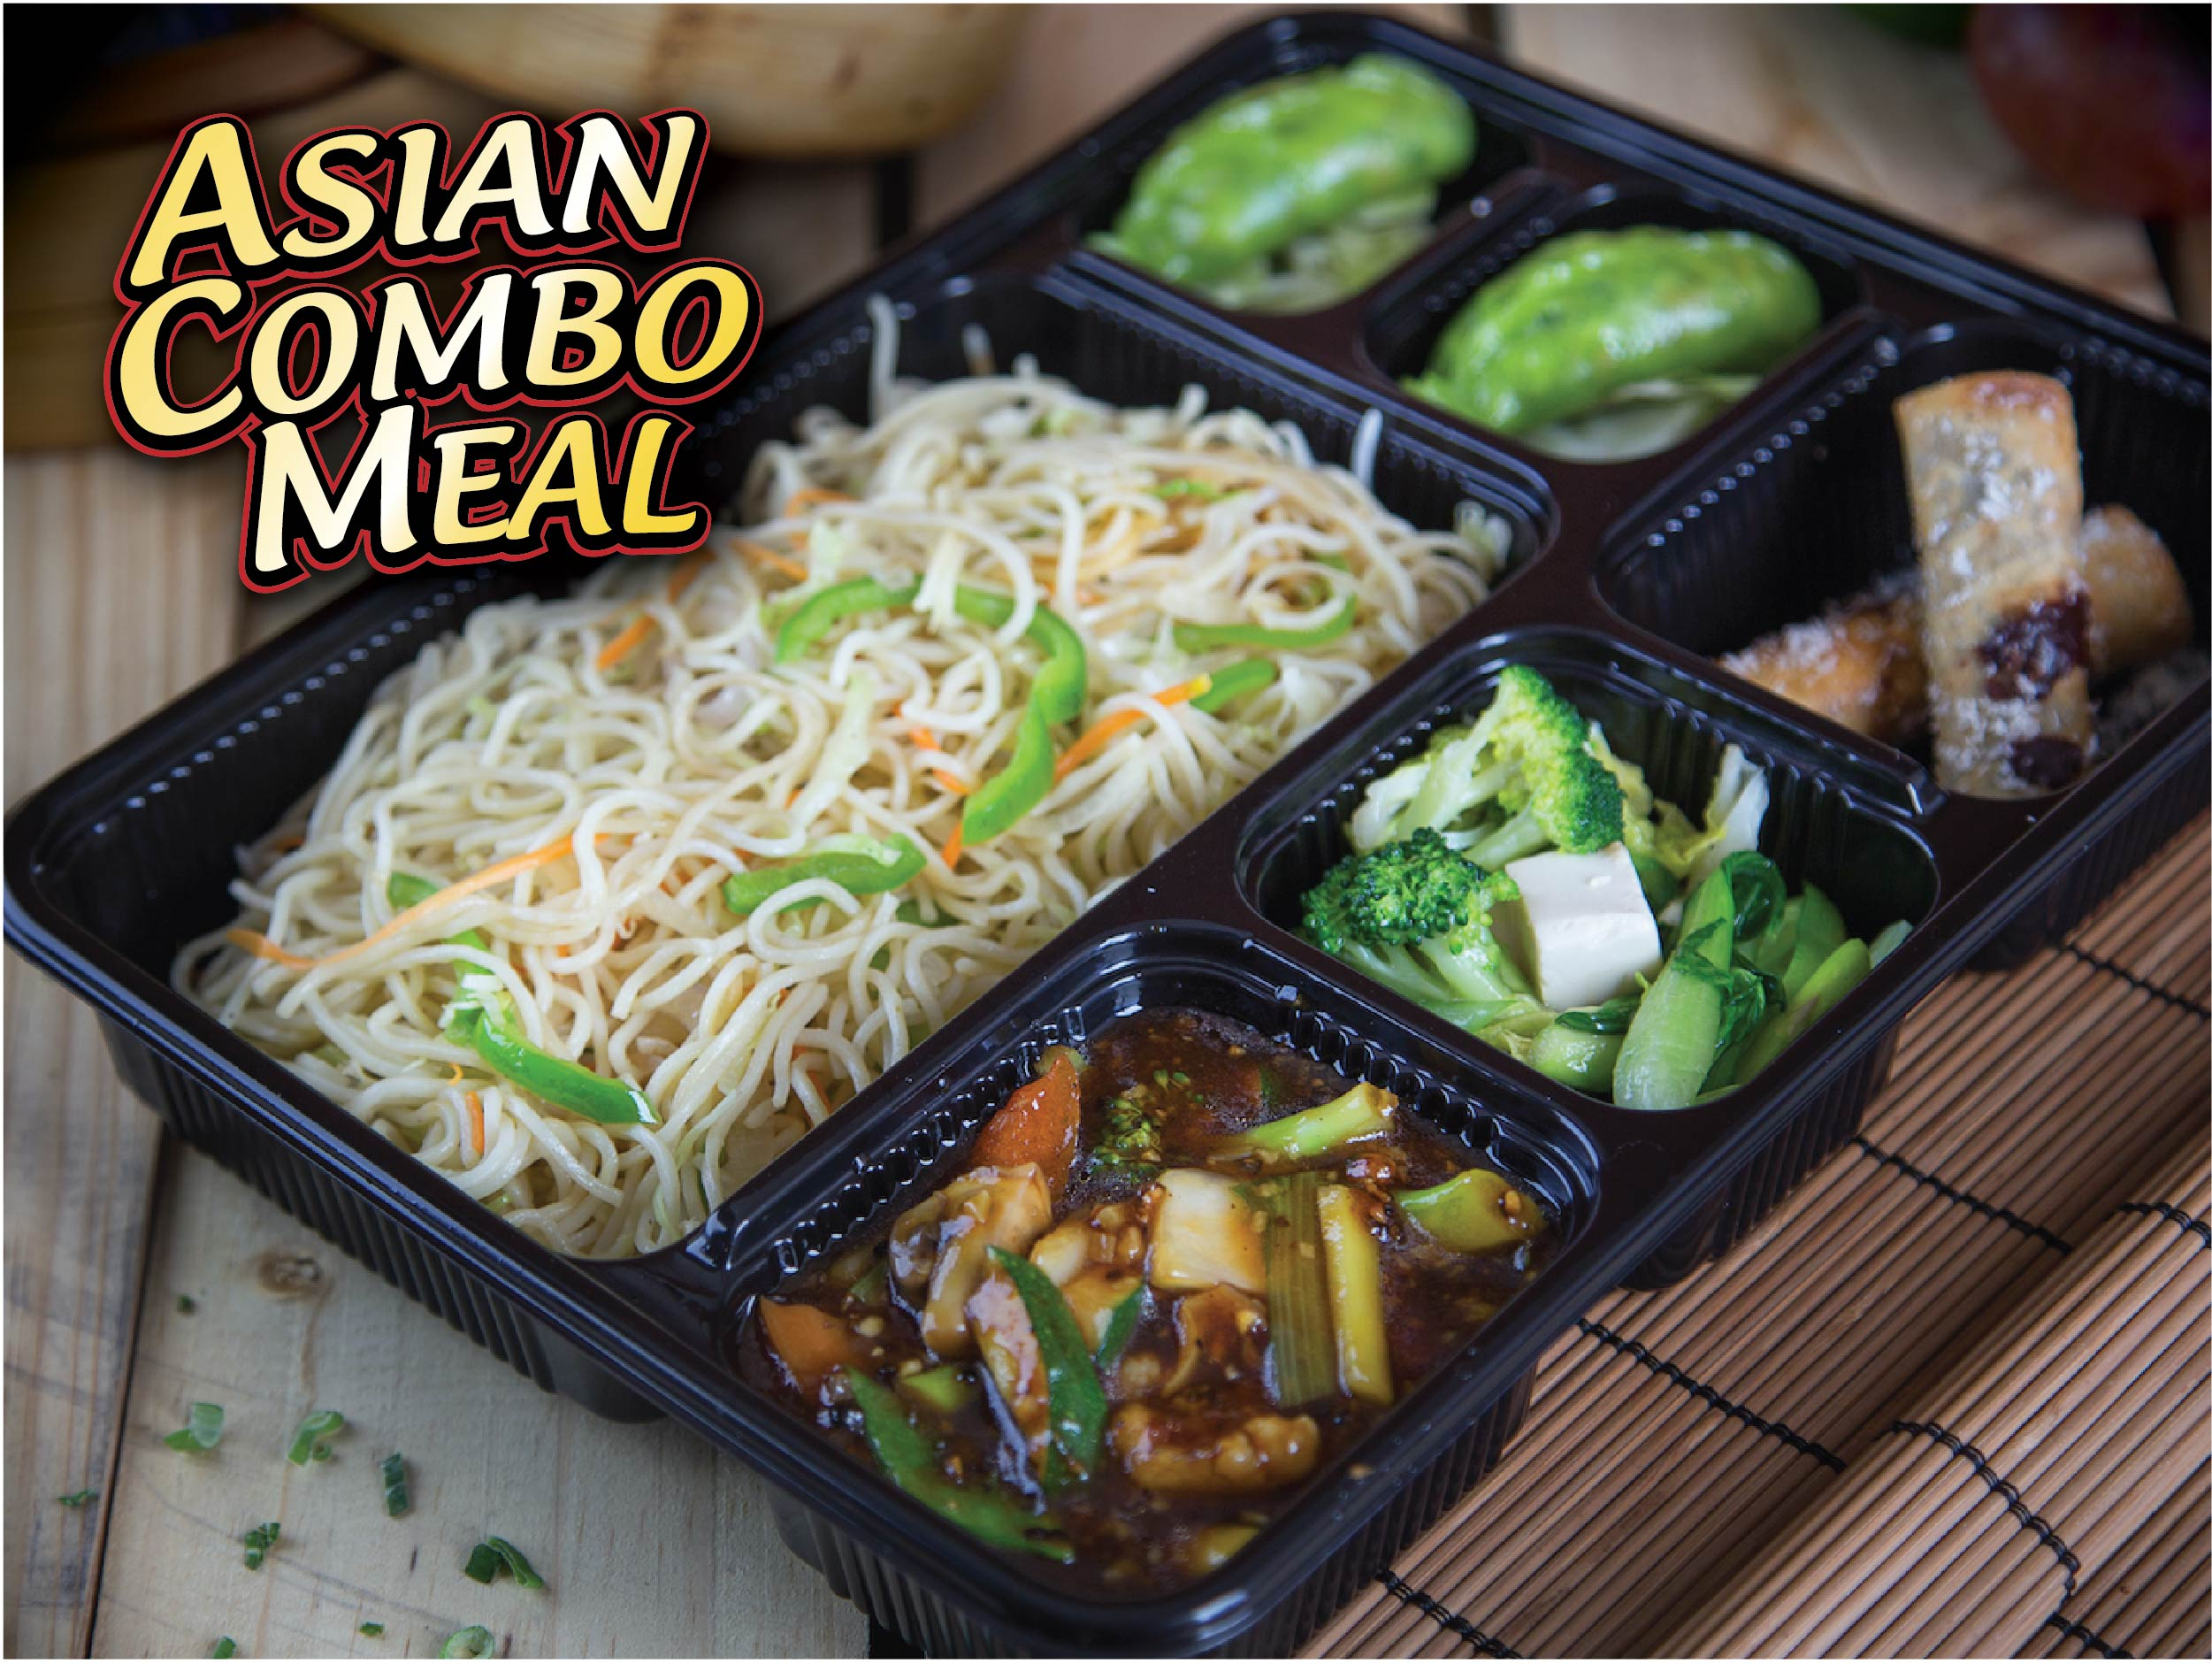 Asian Combo Meal - Vegetarian